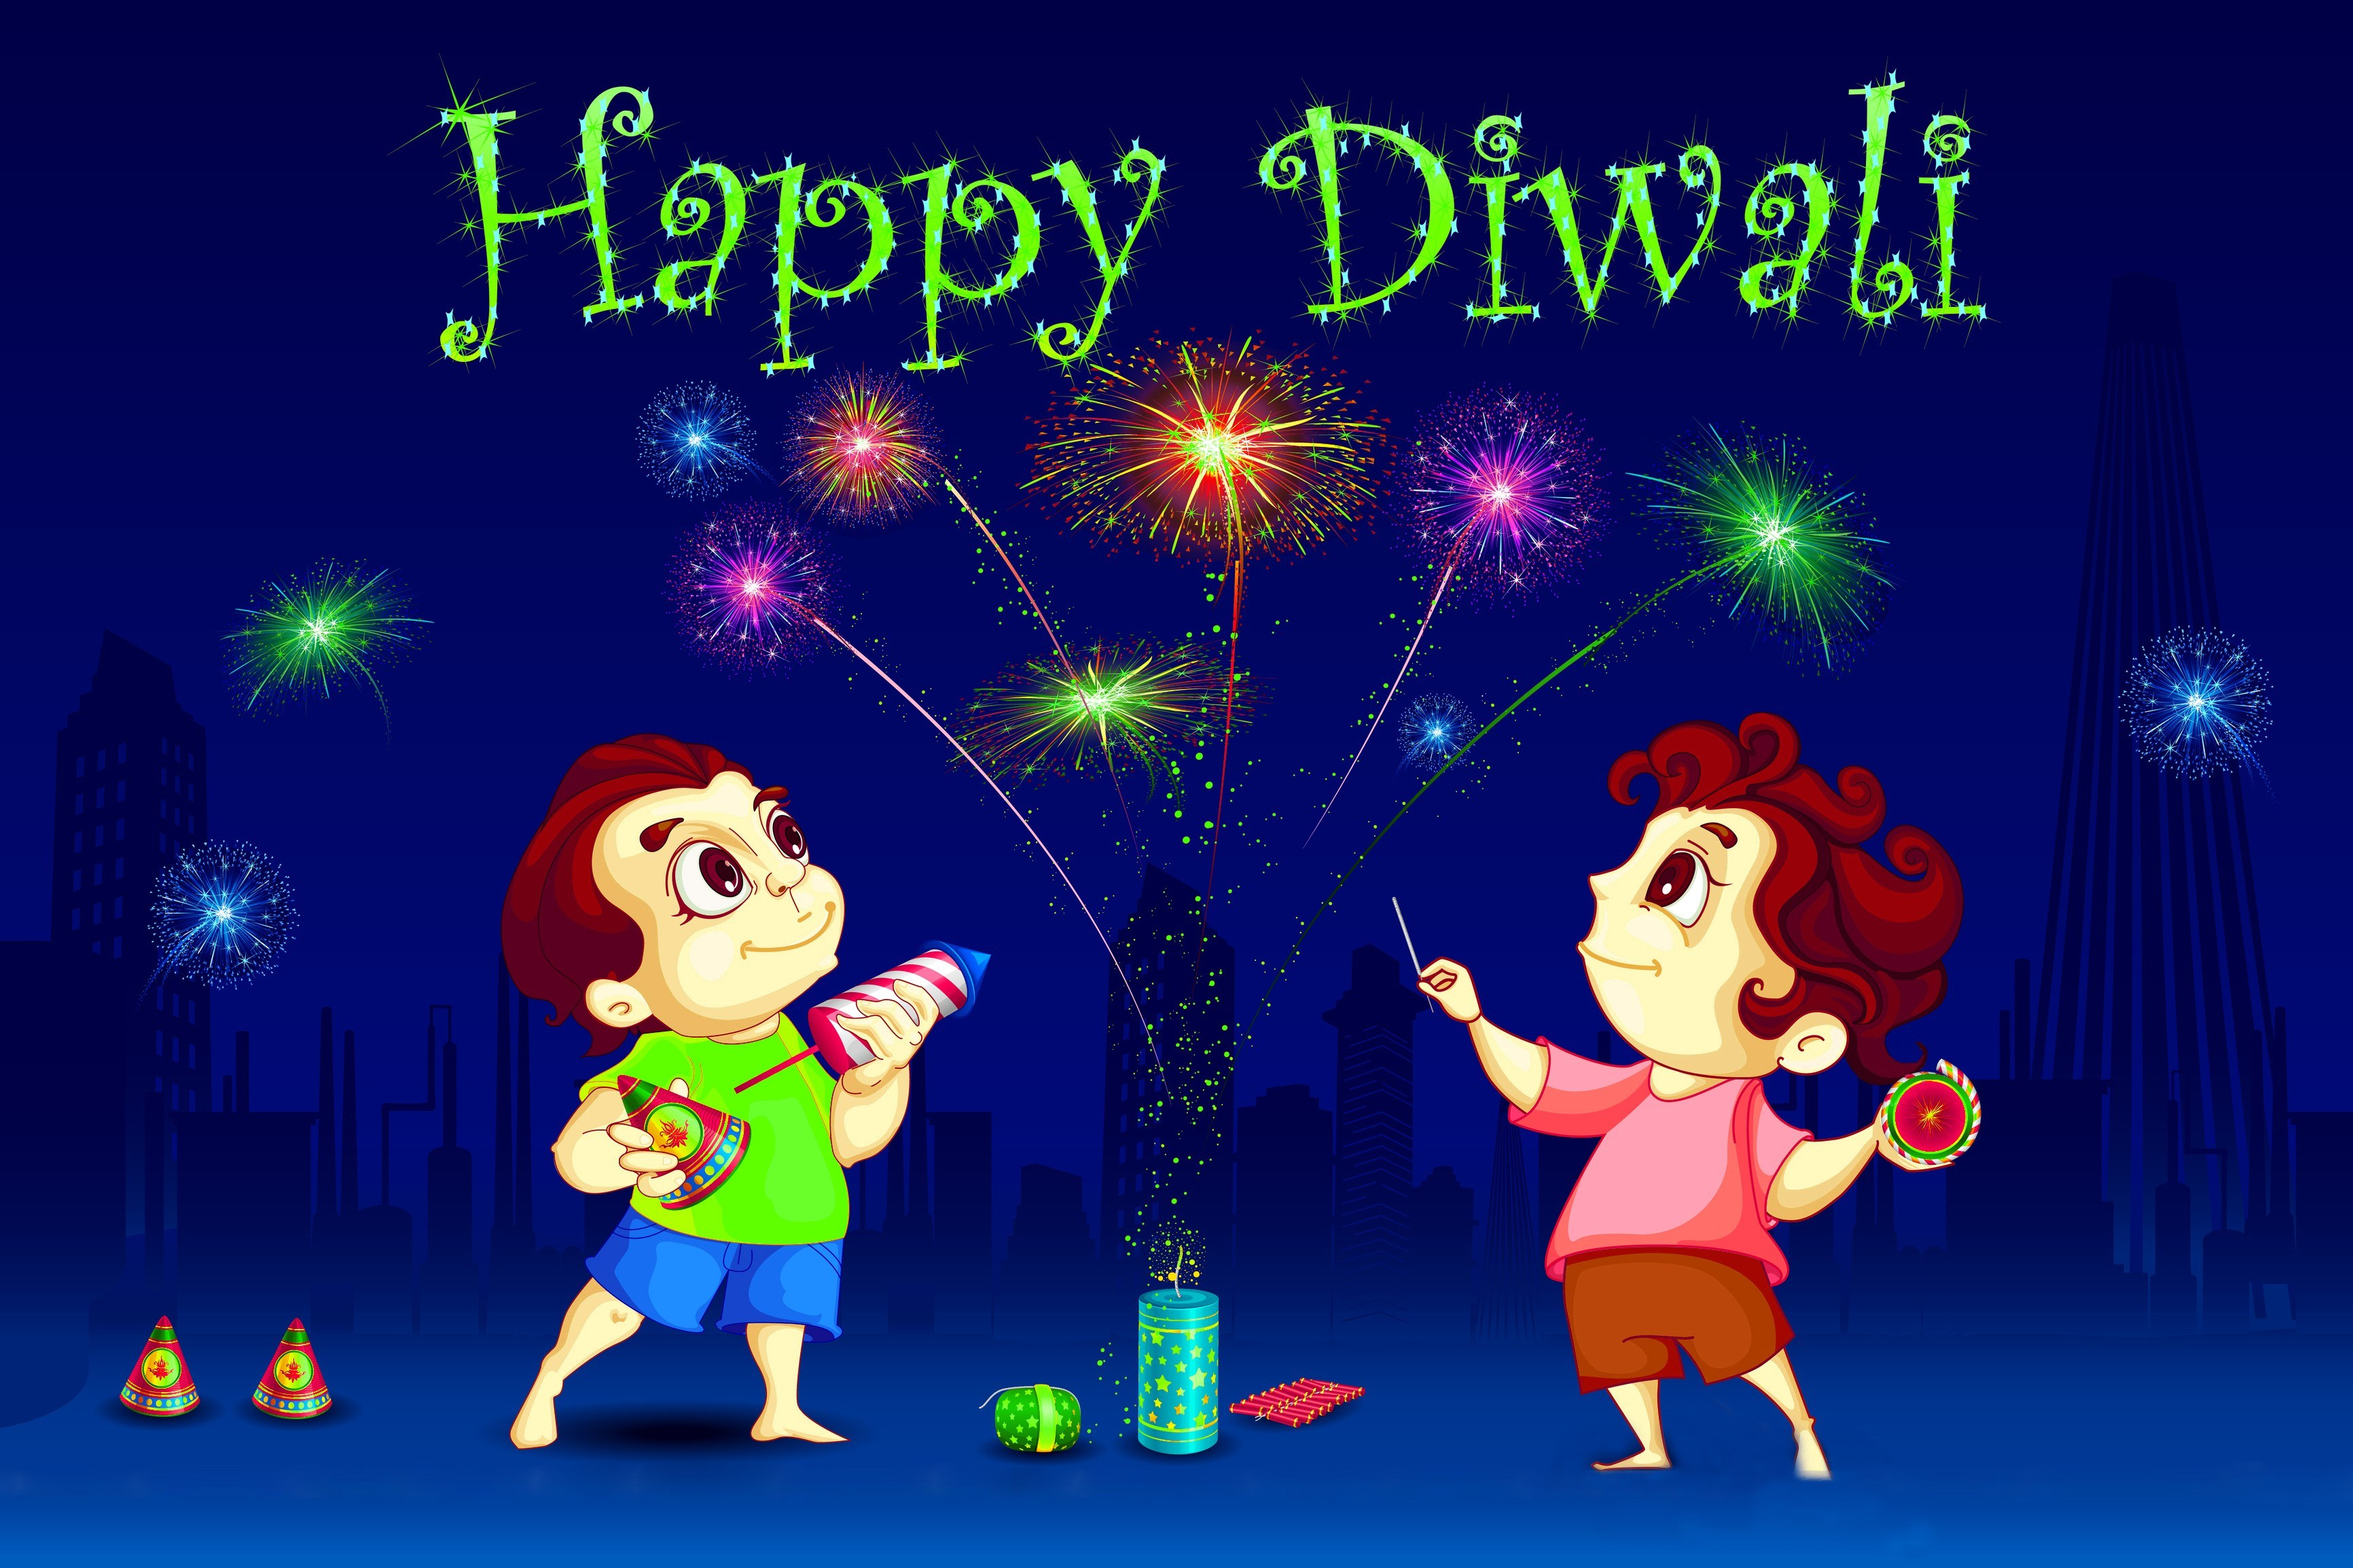 Diwali Animated Wallpaper